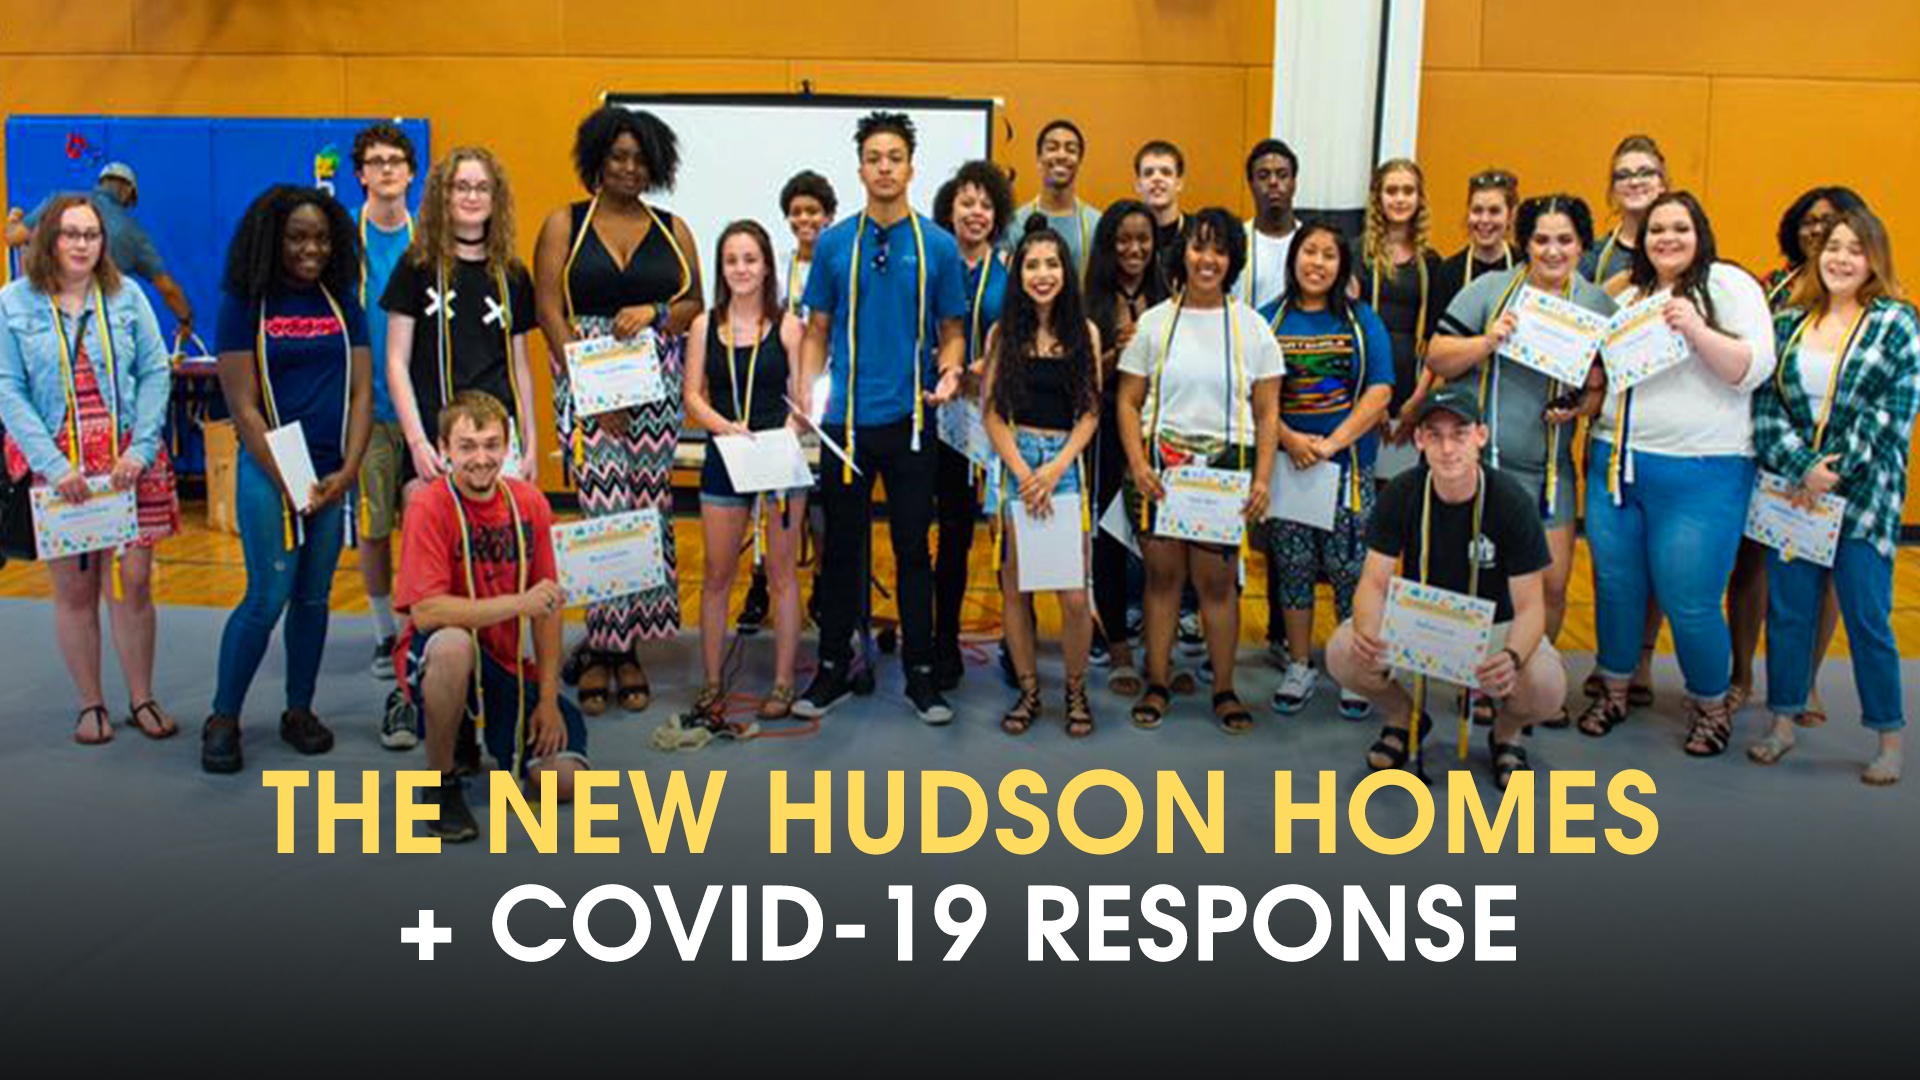 The New Hudson Homes + COVID-19 Response: Thank You for your Referral!!!